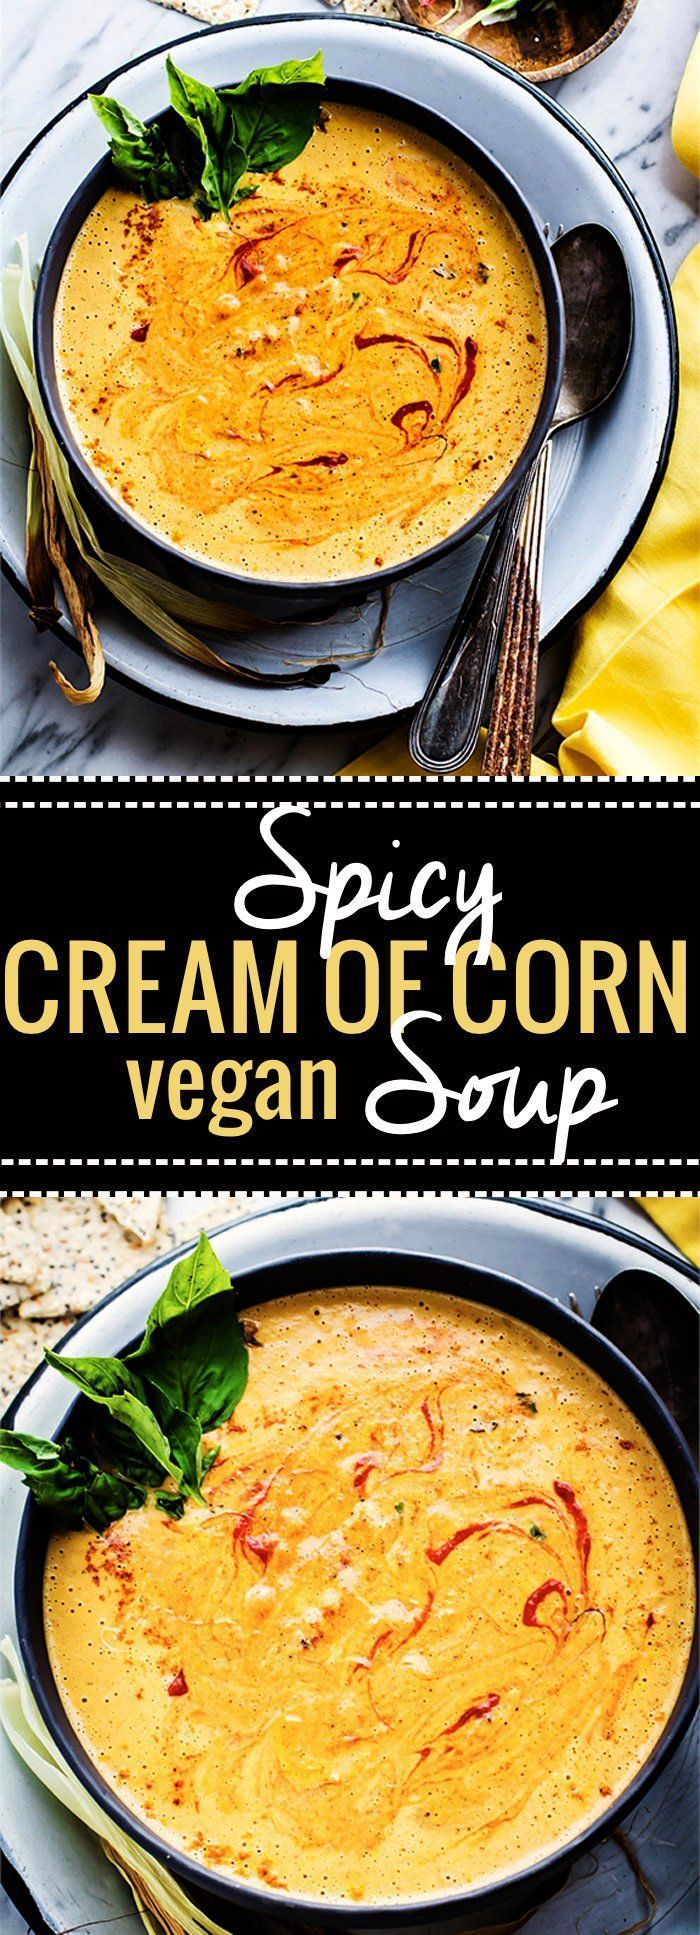 Spicy Vegan Cream of Corn soup! A vegan cream of corn soup that's nourishing, flavorful, and gluten free! So easy to make. Just roast then toss in a blender. Perfect vegetarian dish for anytime of year. Serve warm or chilled. Ready in 35 minutes and super tasty!! /cottercrunch/